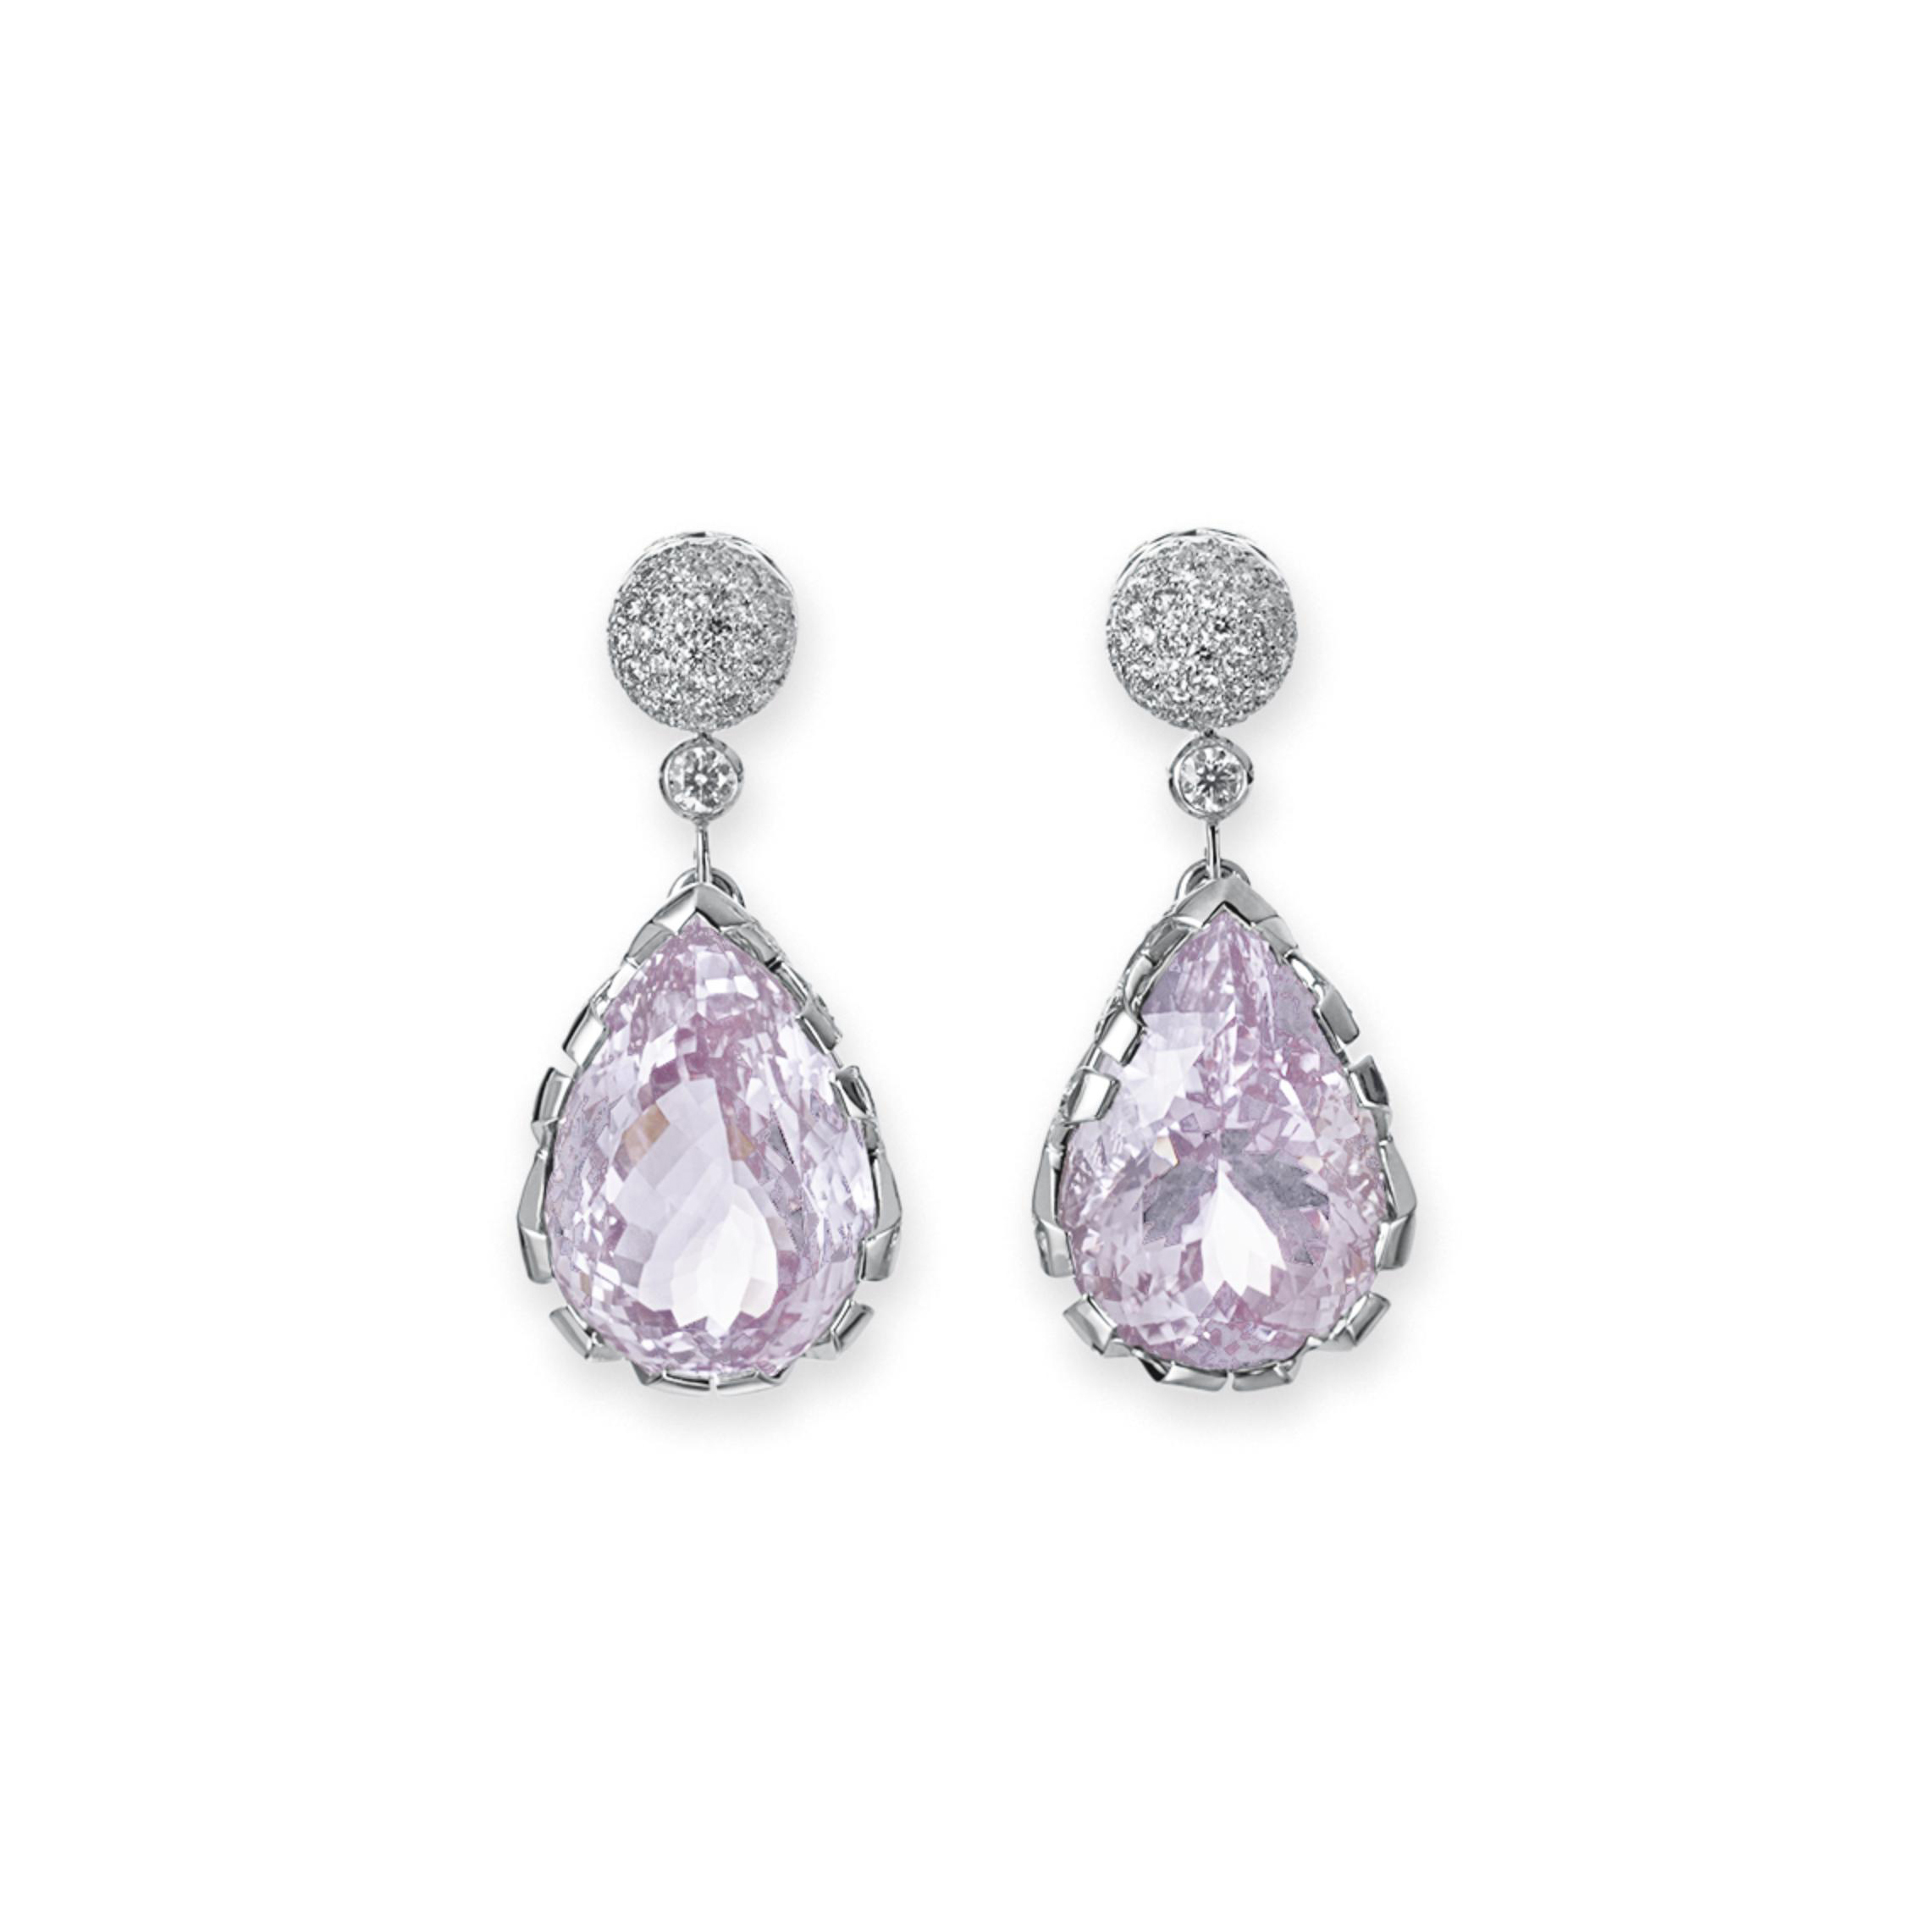 A PAIR OF KUNZITE AND DIAMOND EAR PENDANTS, BY PALOMA PICASSO, TIFFANY & CO.